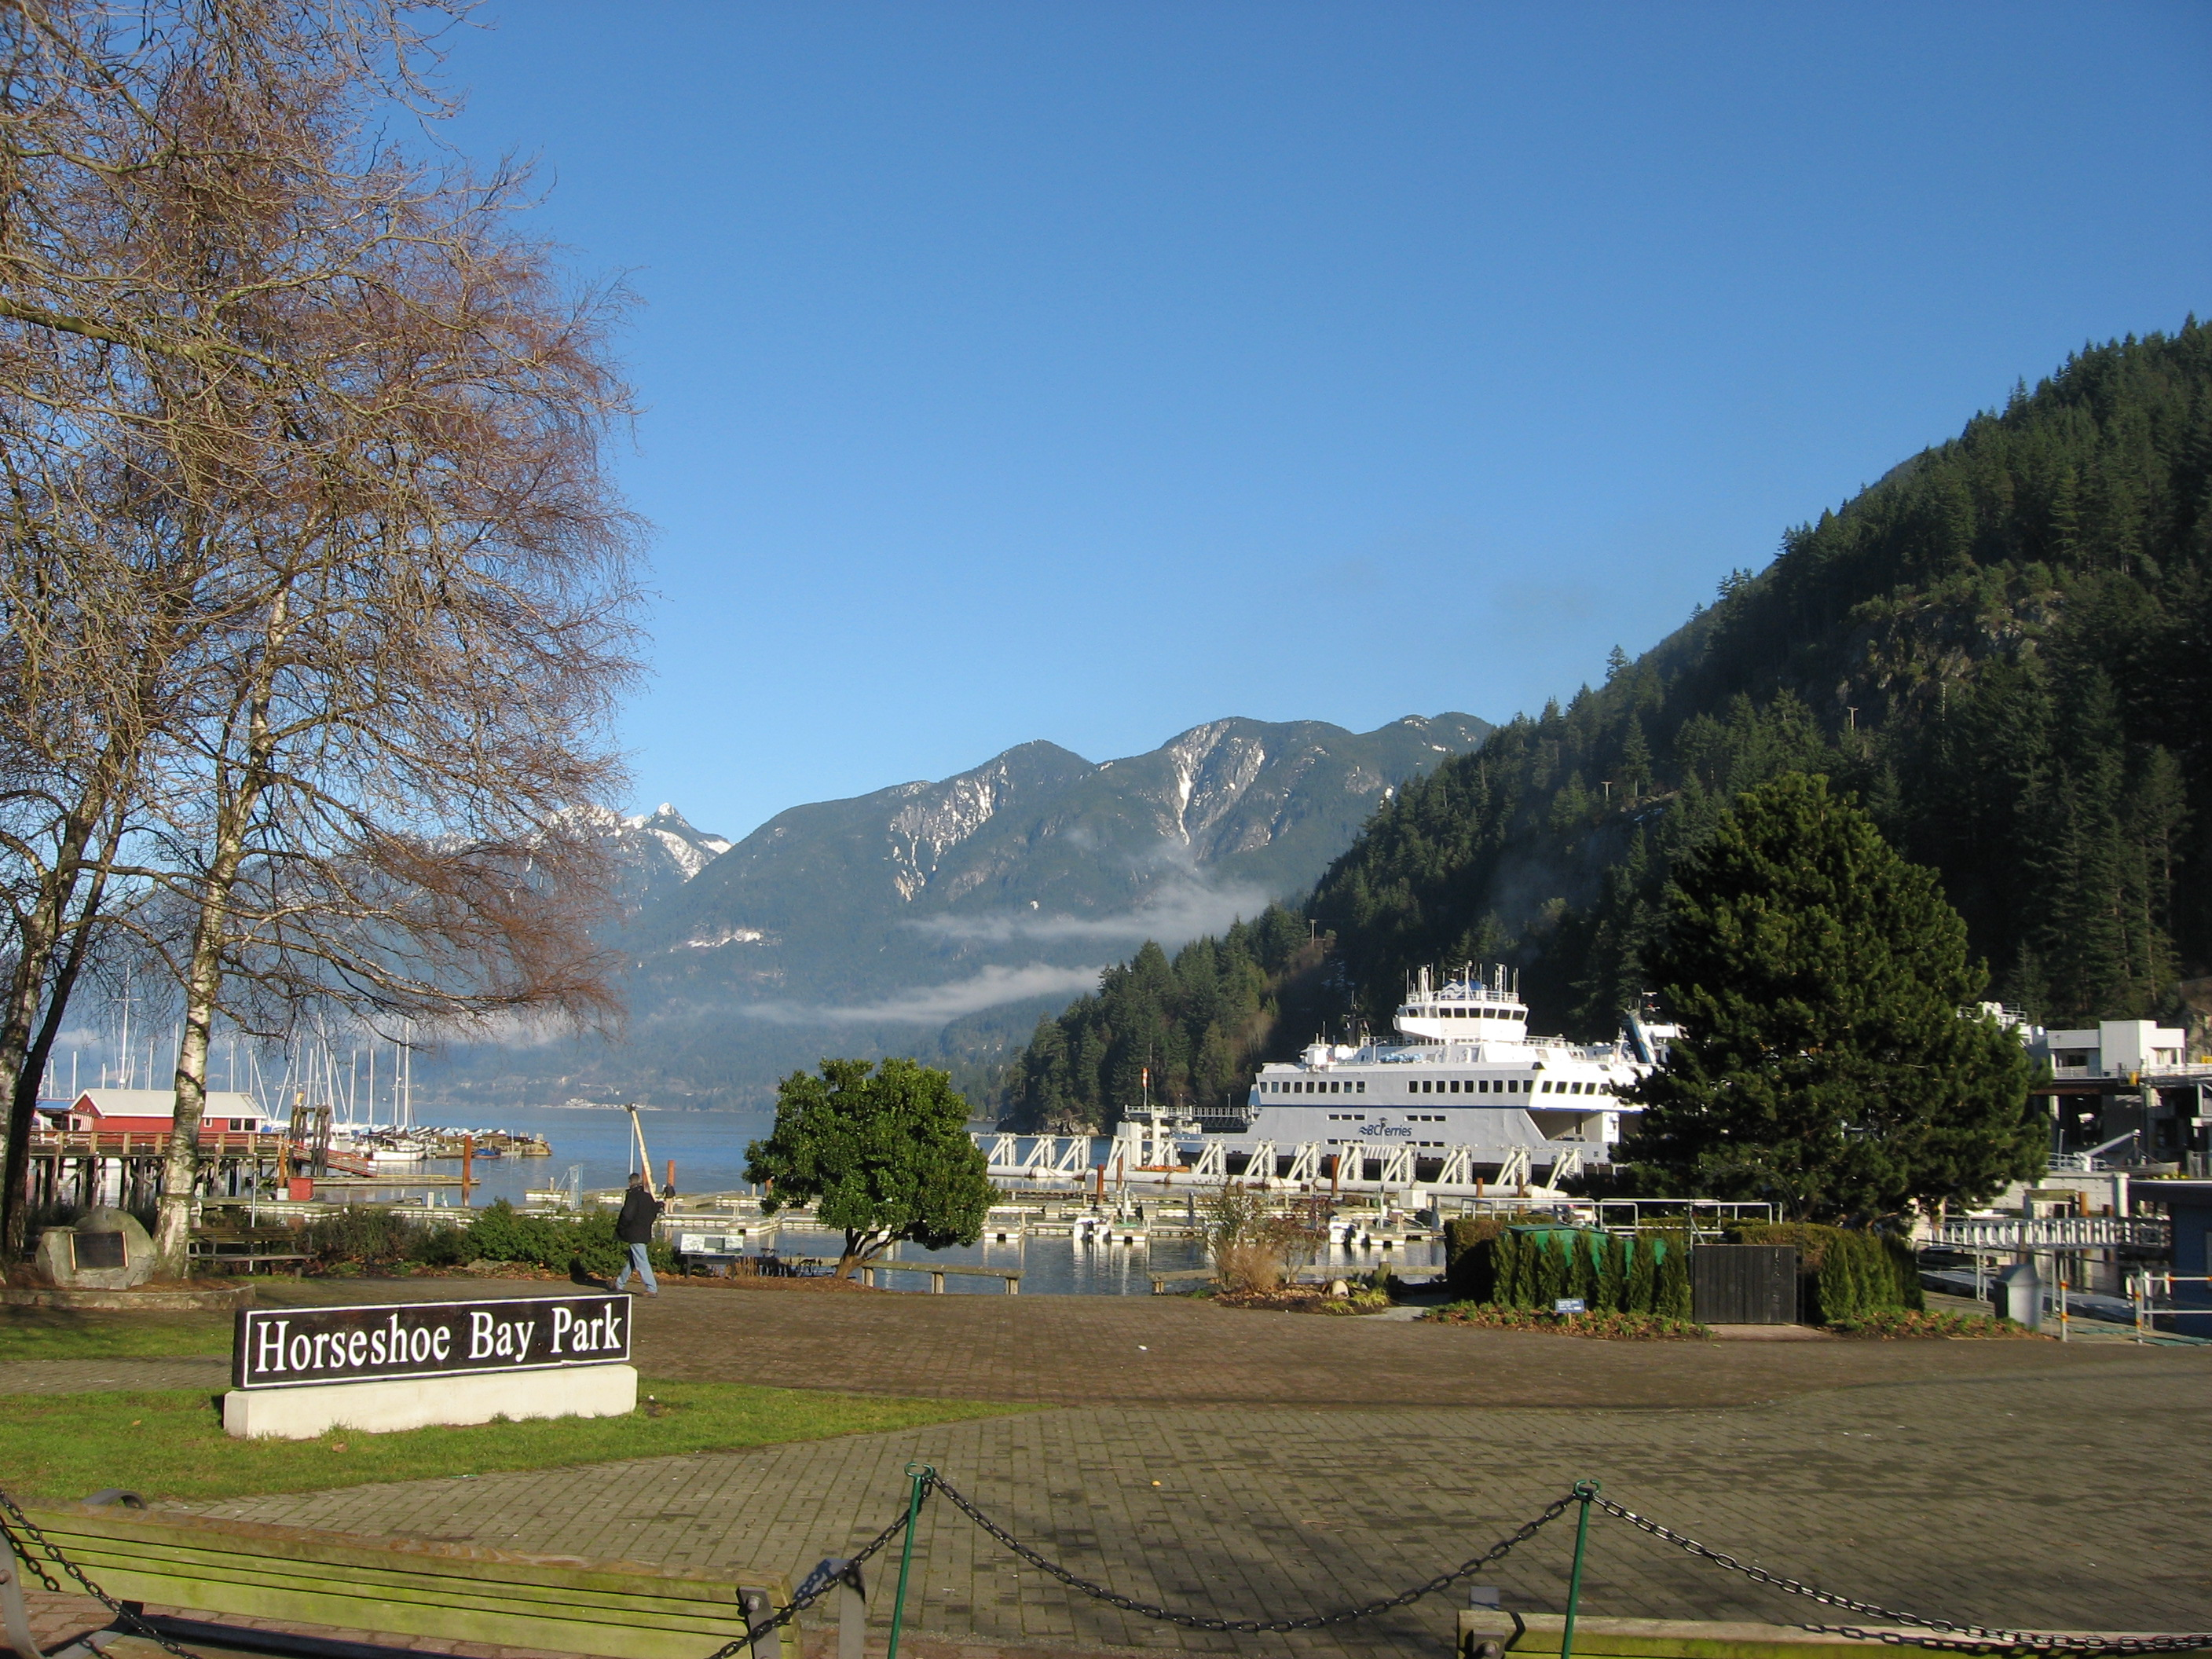 Horseshoe Bay Park